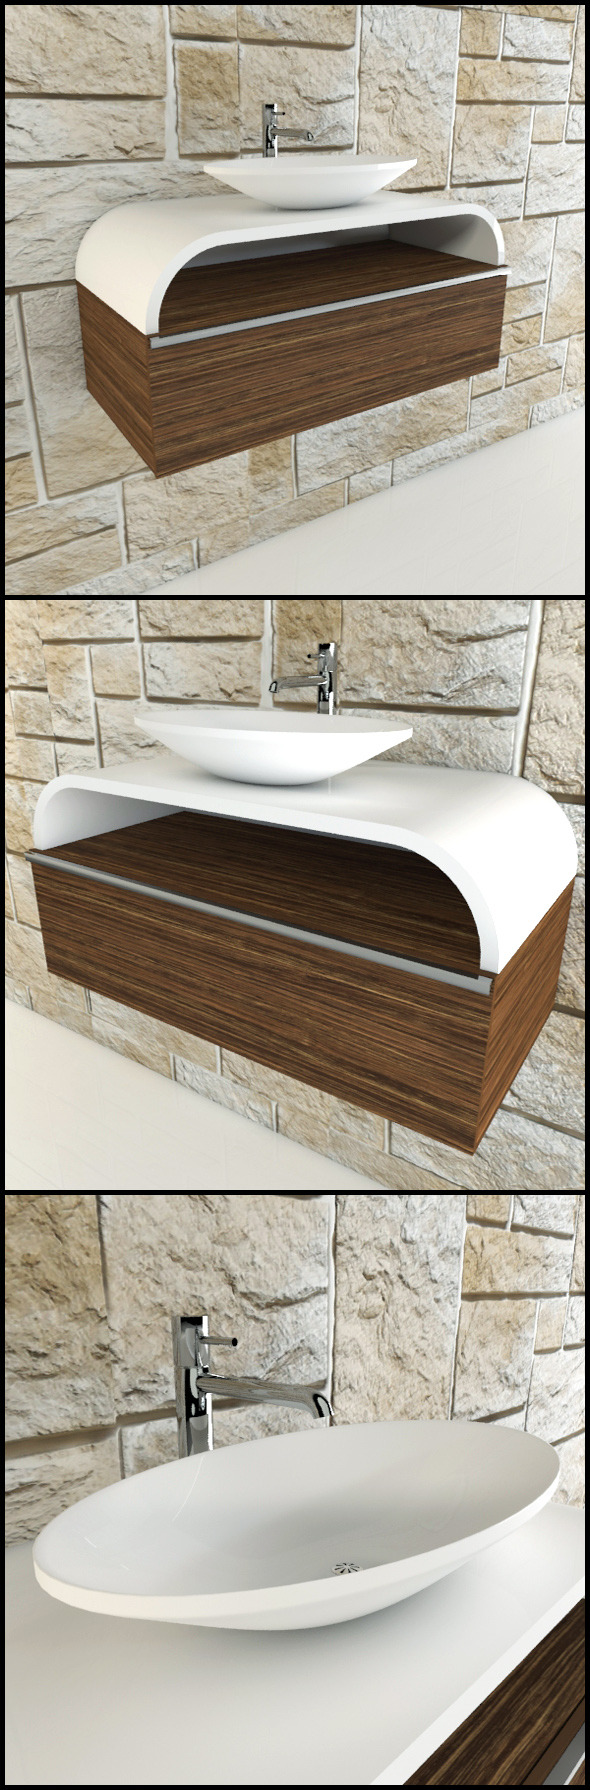 Toilet basin with chrome tap and wood panels